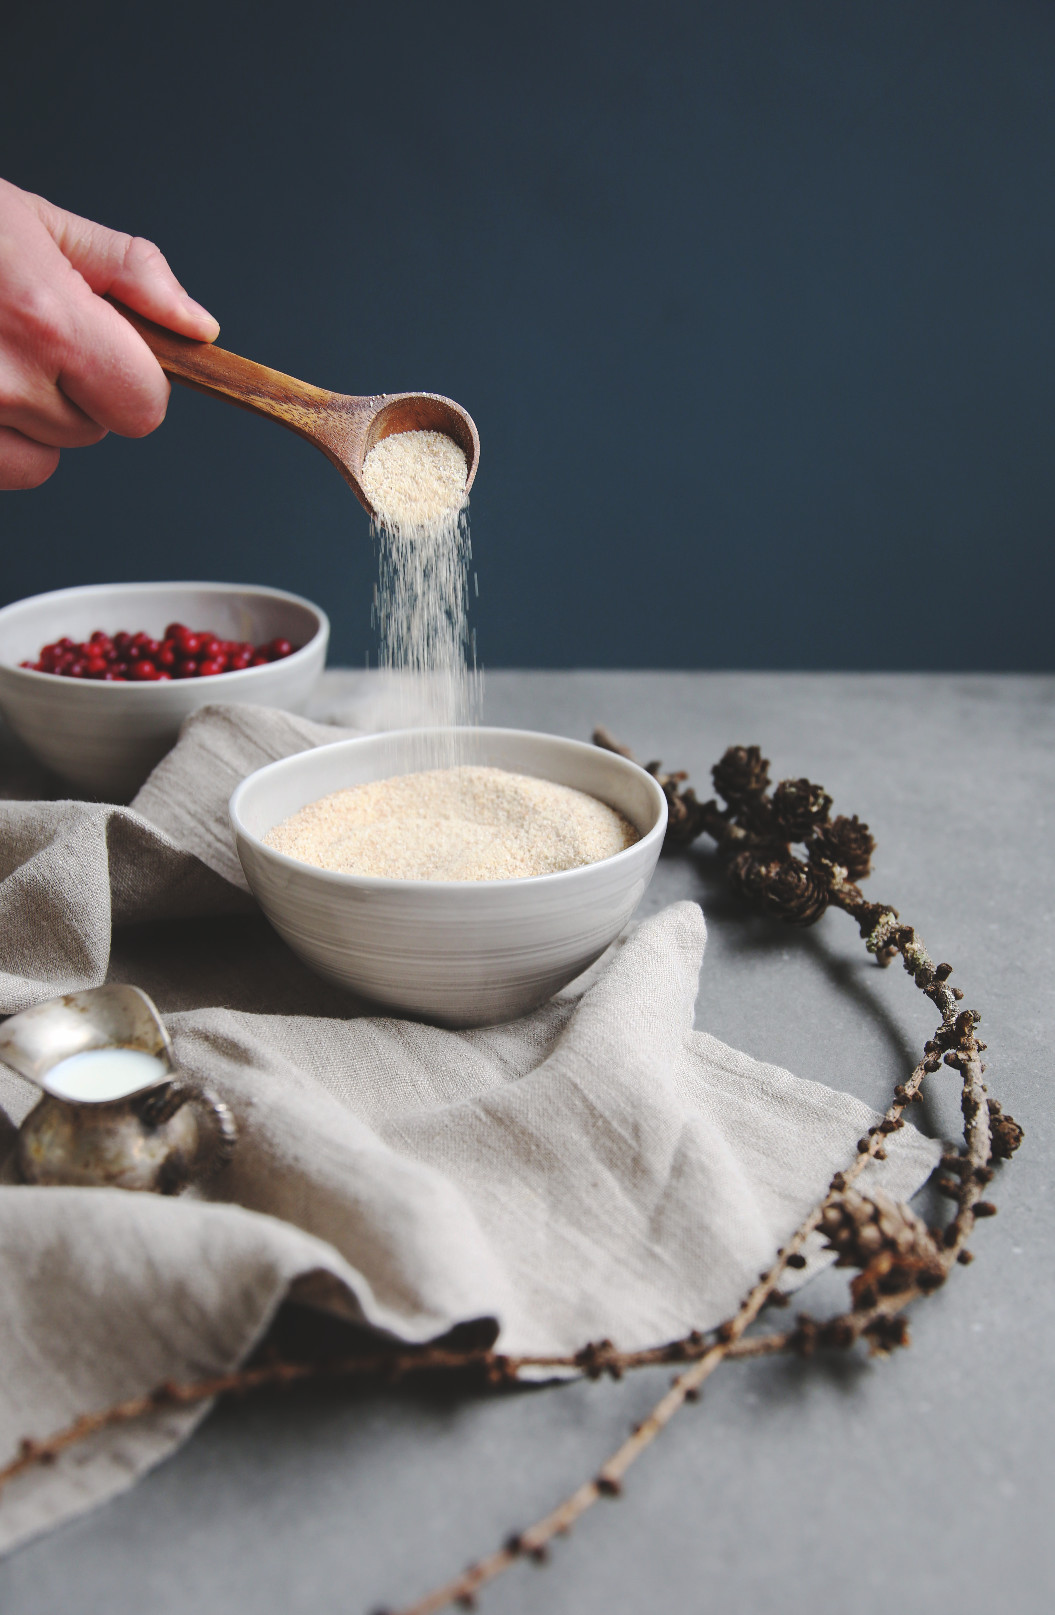 Whipped lingonberry porridge | Vispipuuro | on Due fili d'erba | Two blades of grass | Ceramics by Pentik | Background by Florim | Recipe, styling and photos by Thais FK